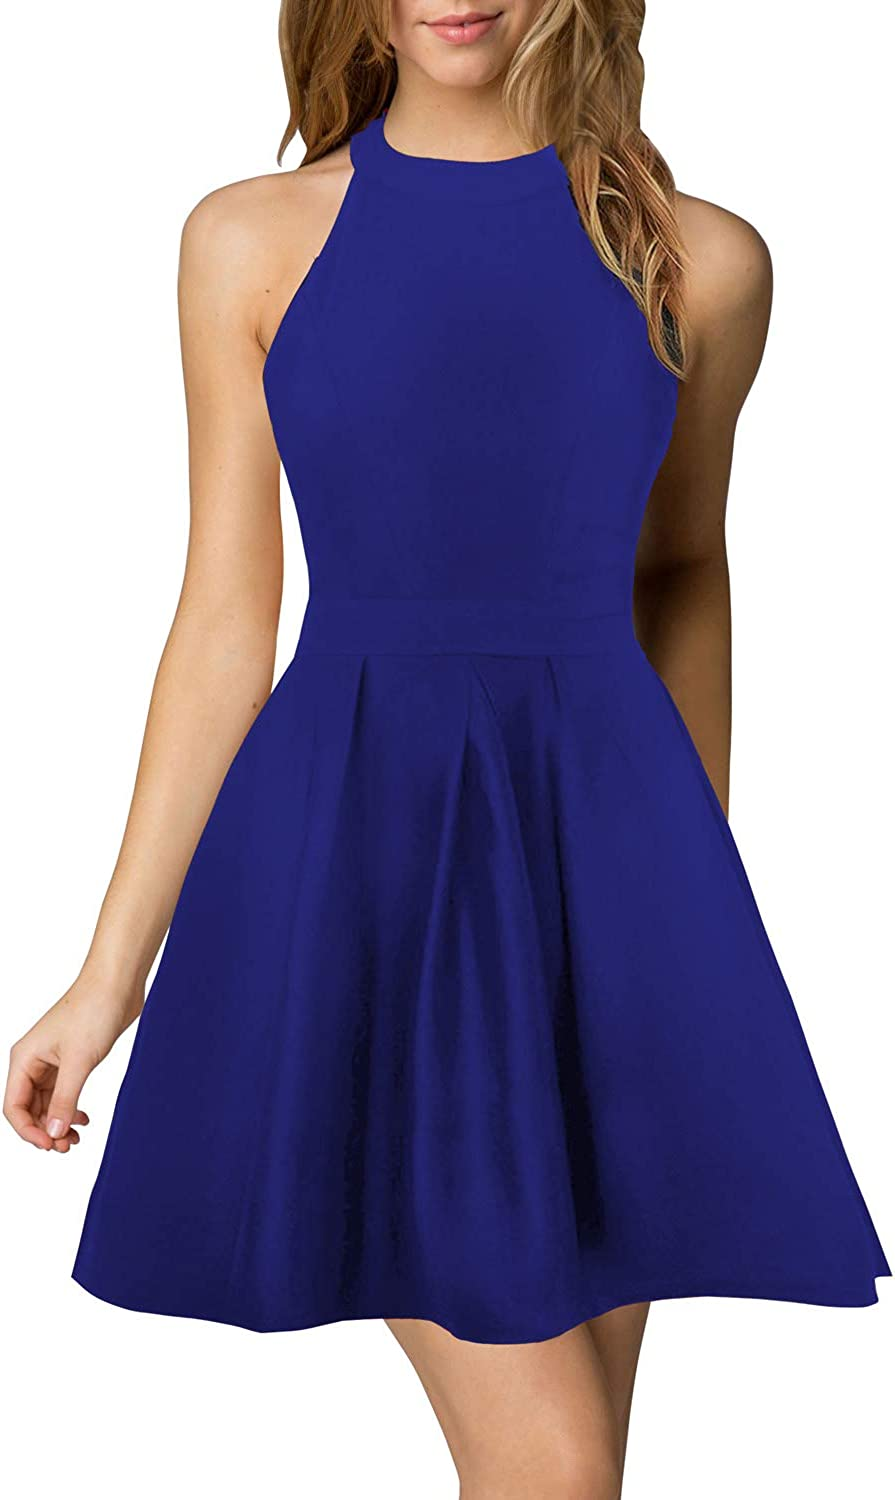 Berydress Womens Halter Neck Backless Flared A-Line Short Cocktail Party Dress